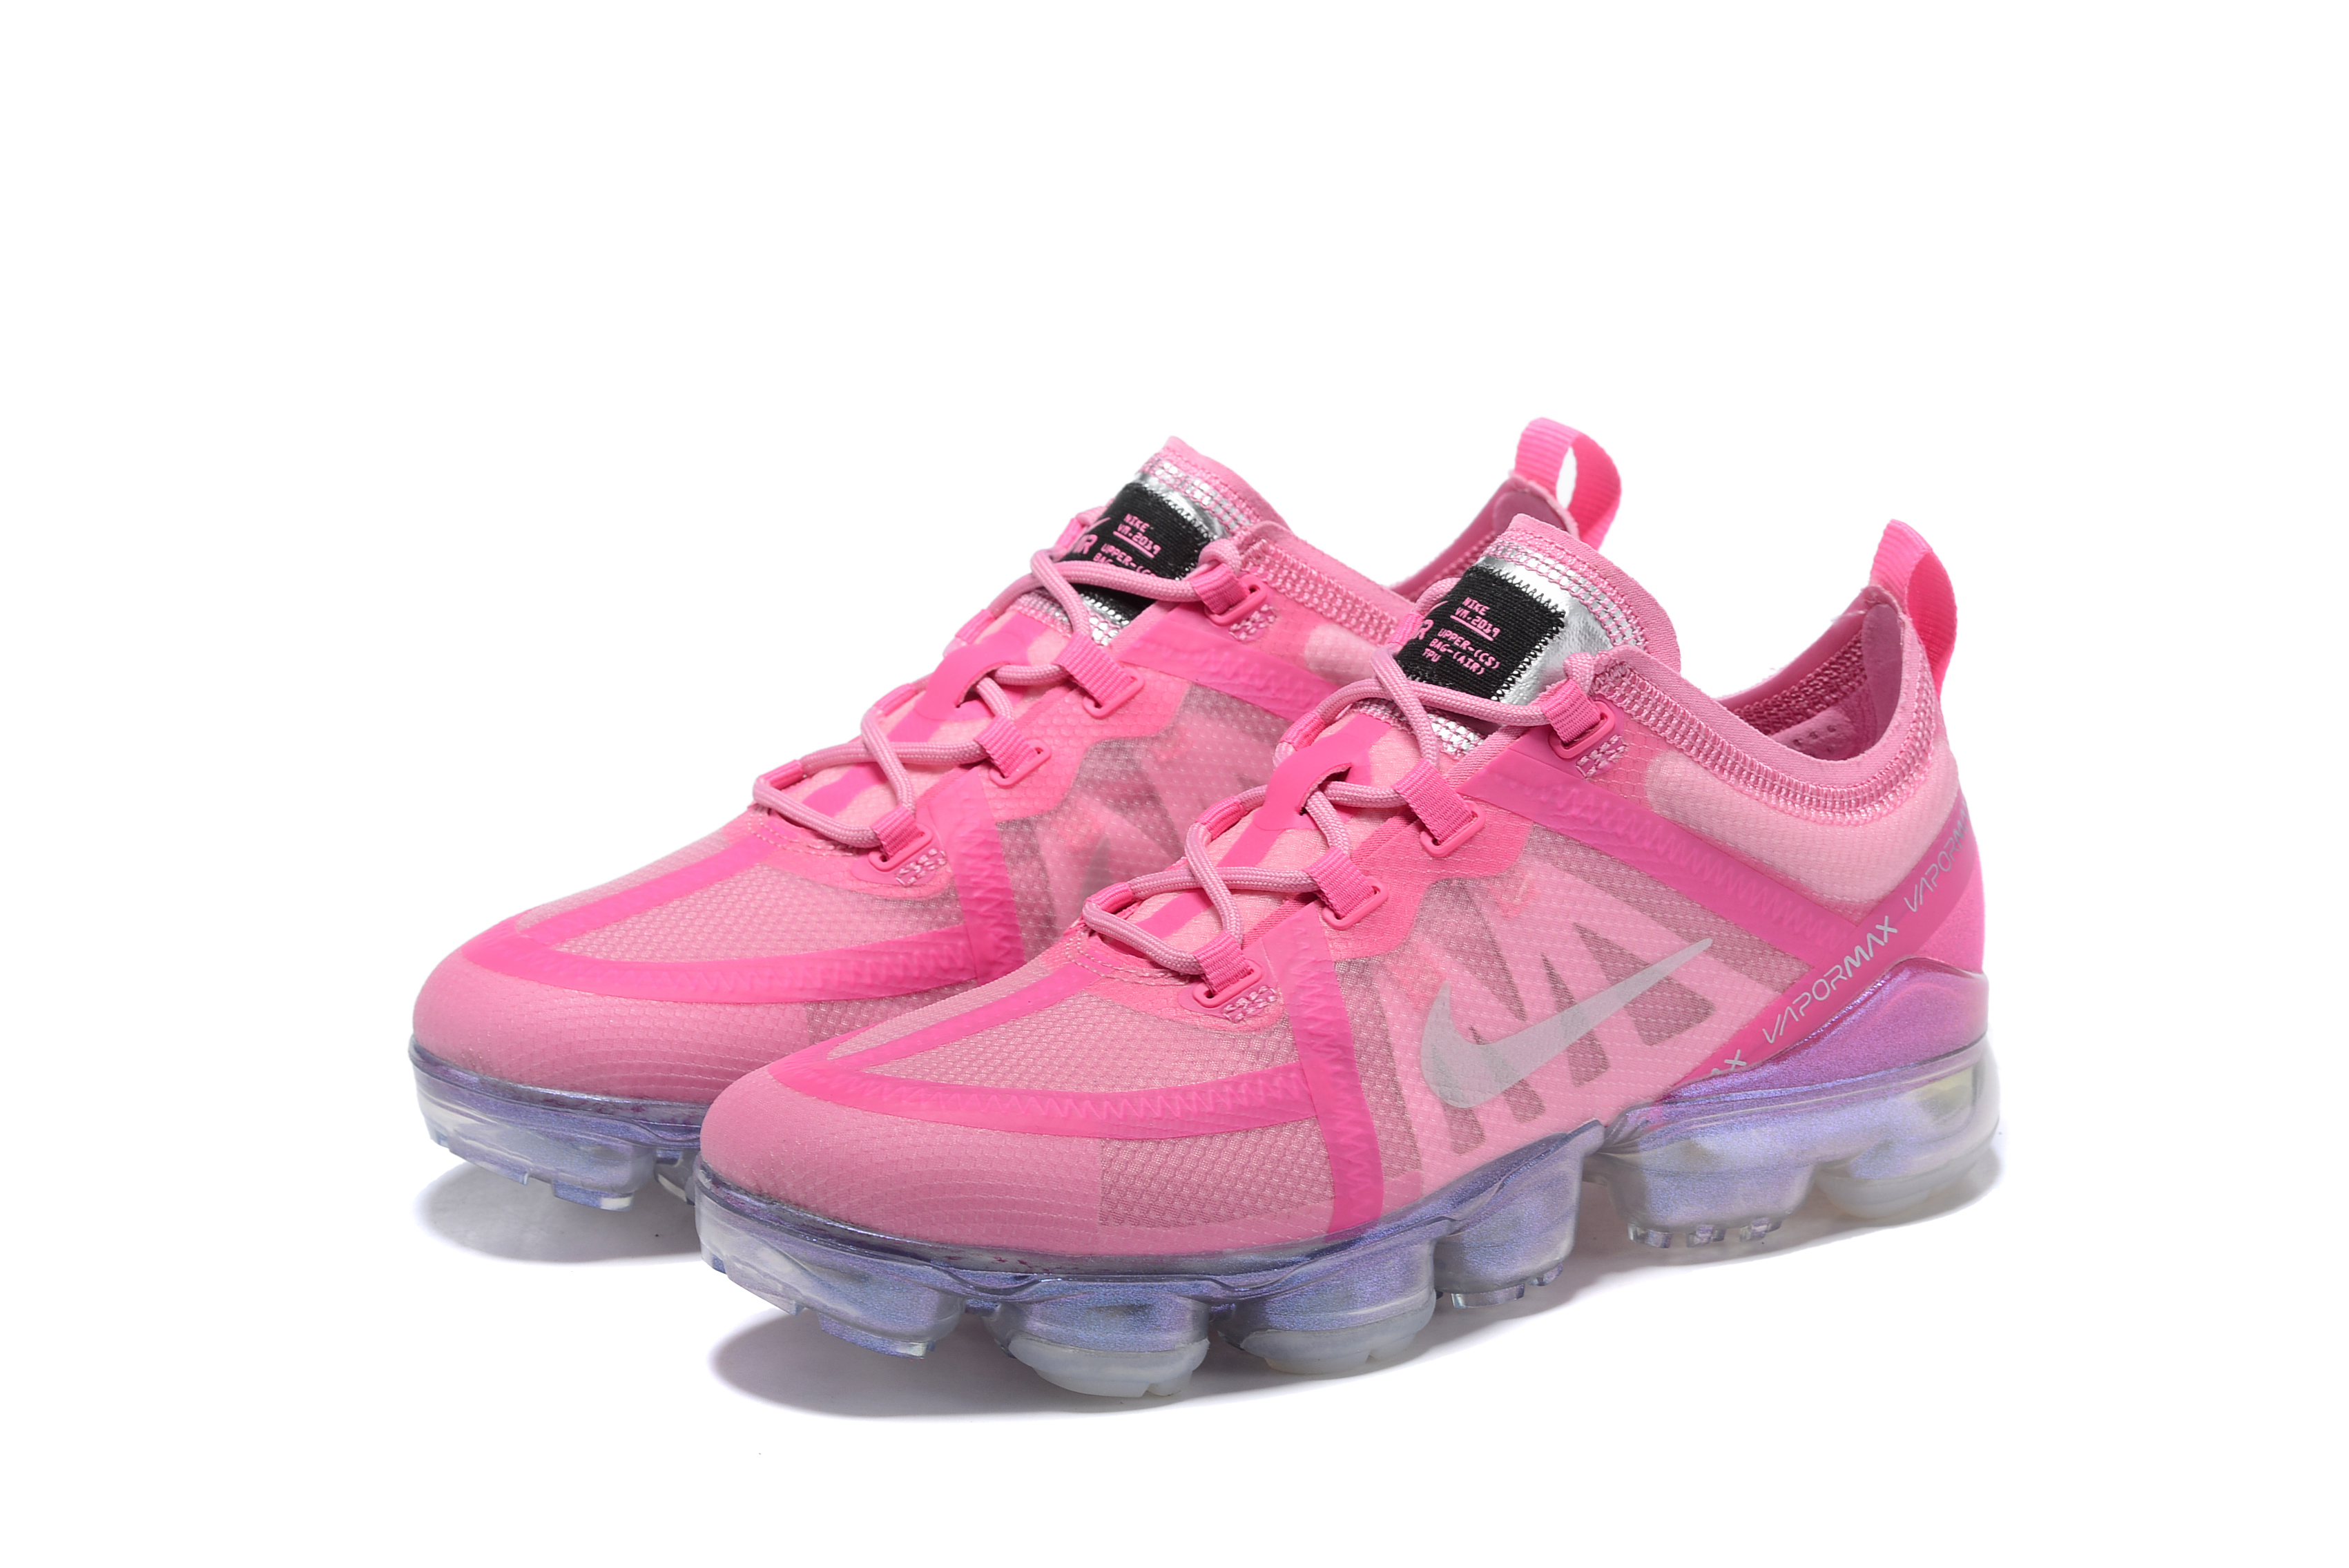 2019 Nike Air VaporMax Women Pink Silver Shoes